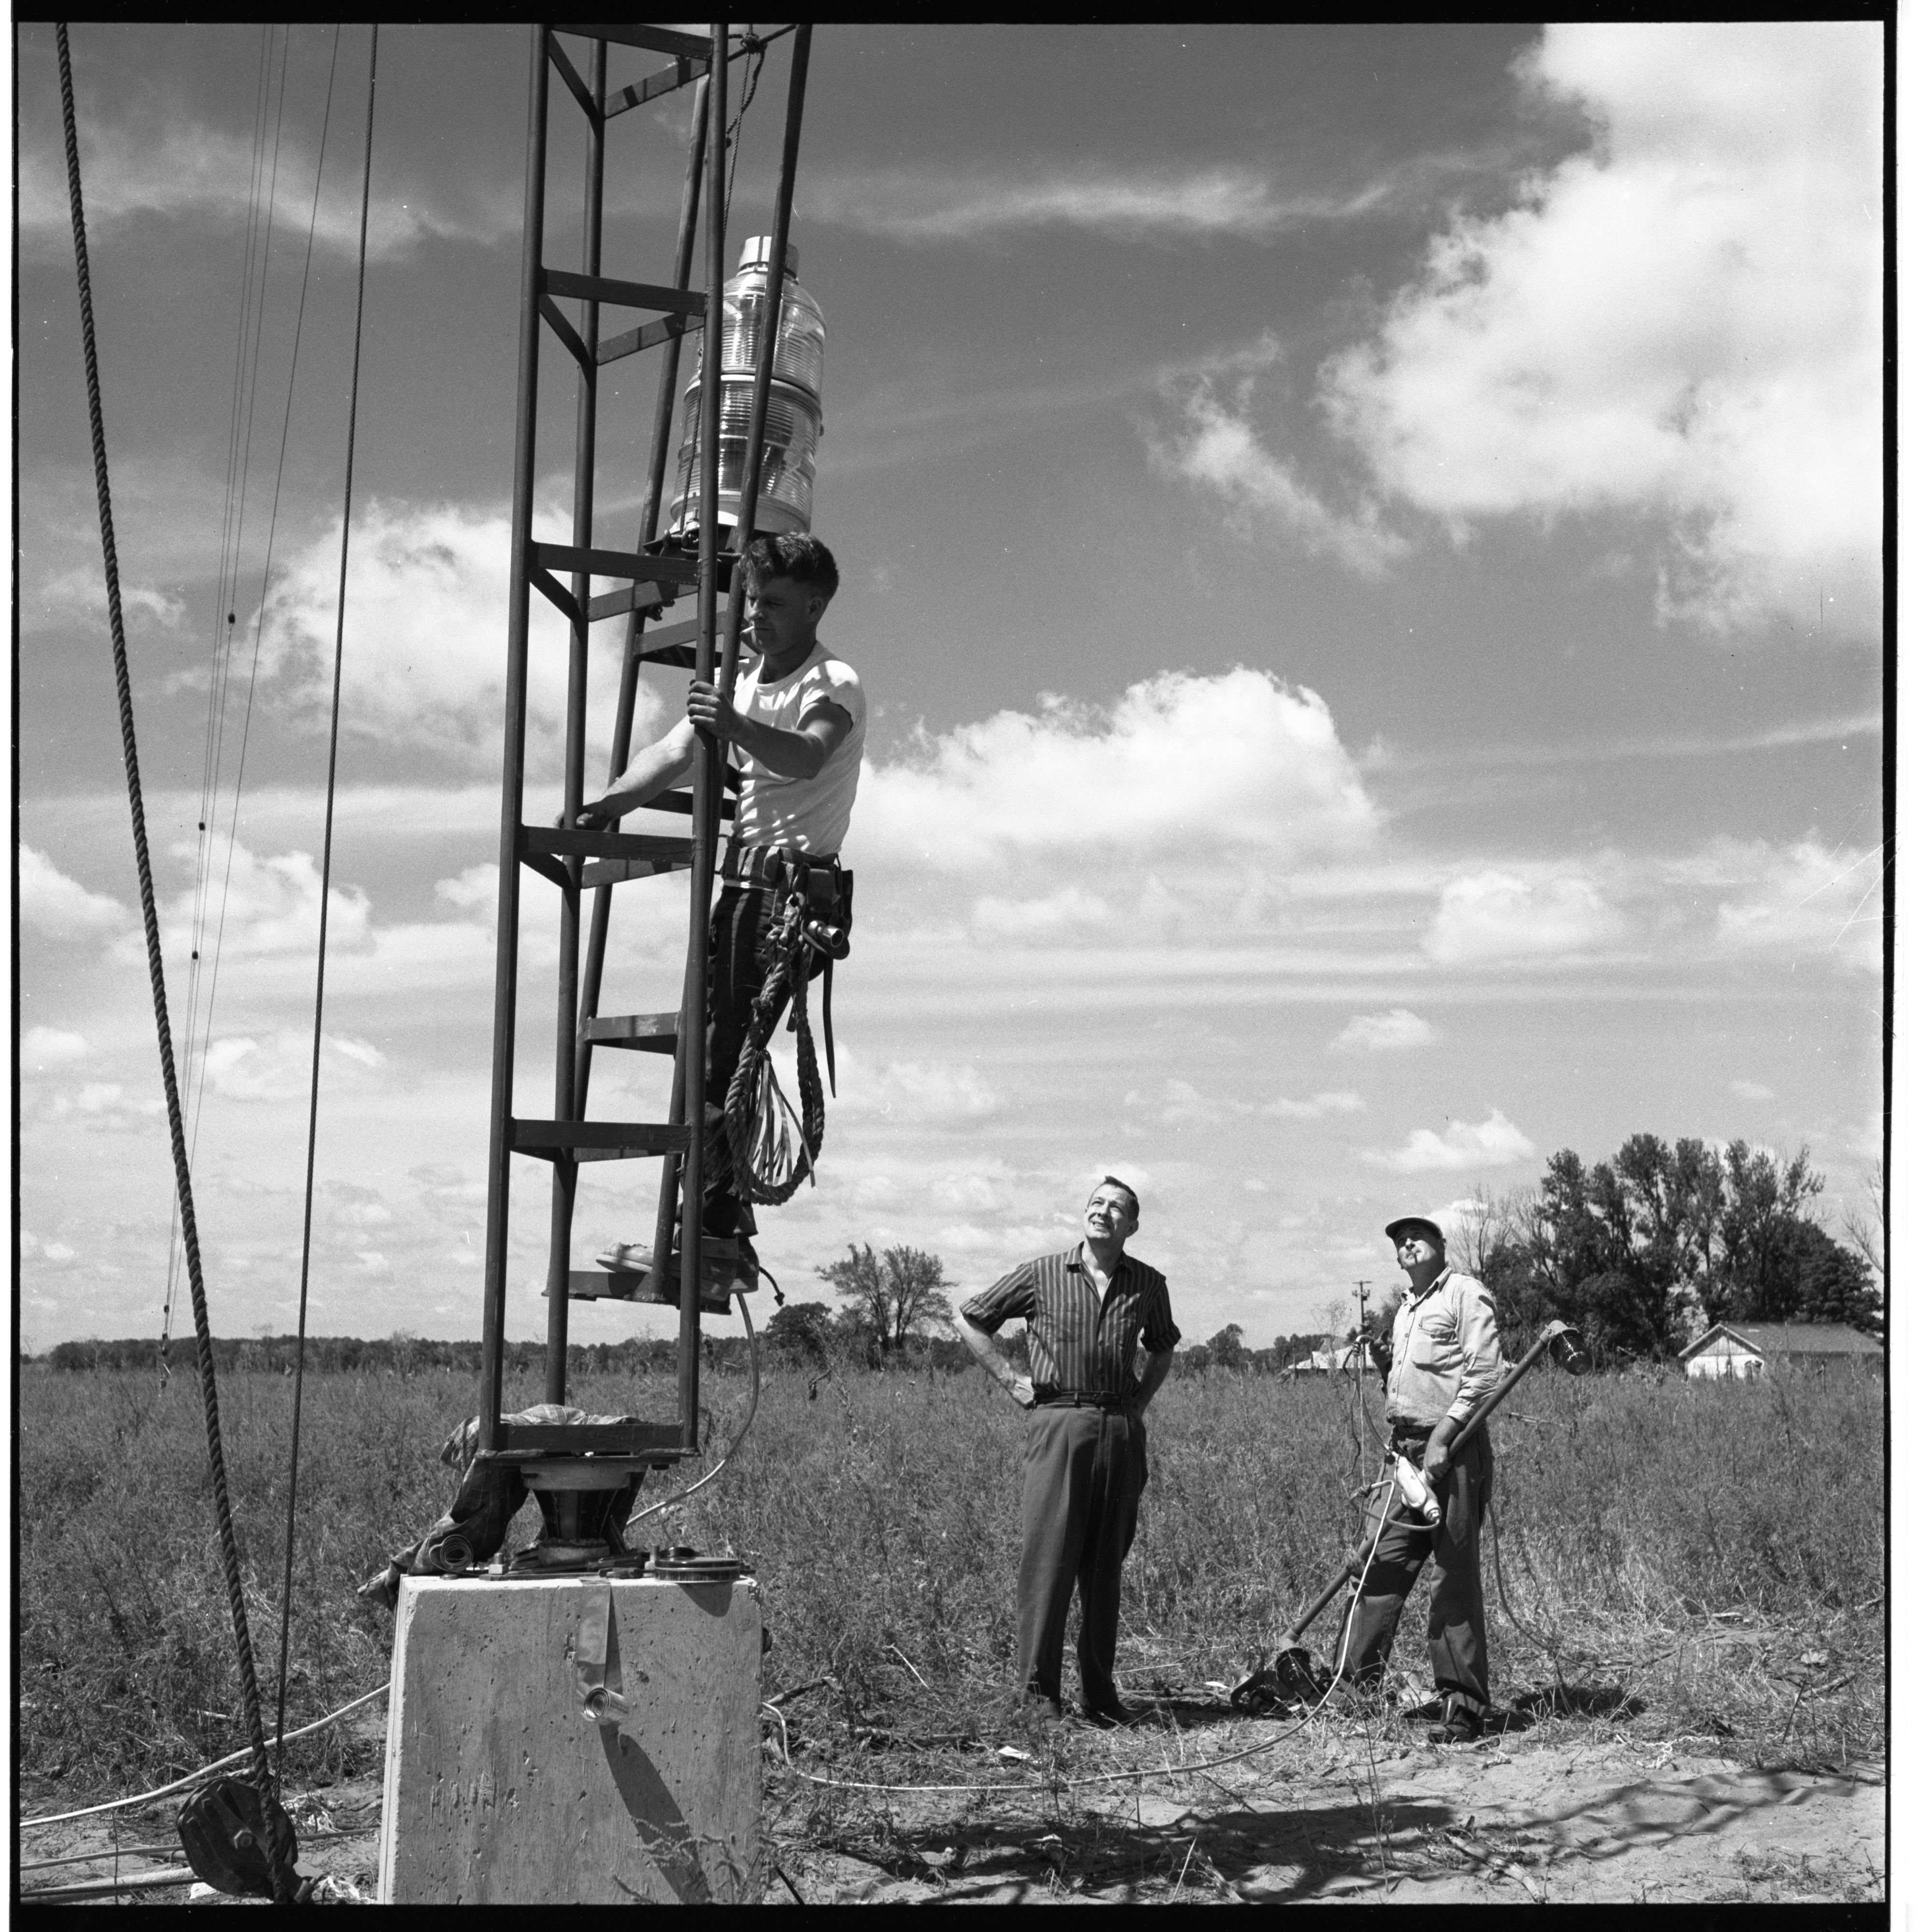 Construction Of New WOIA Radio Tower, August 1957 image